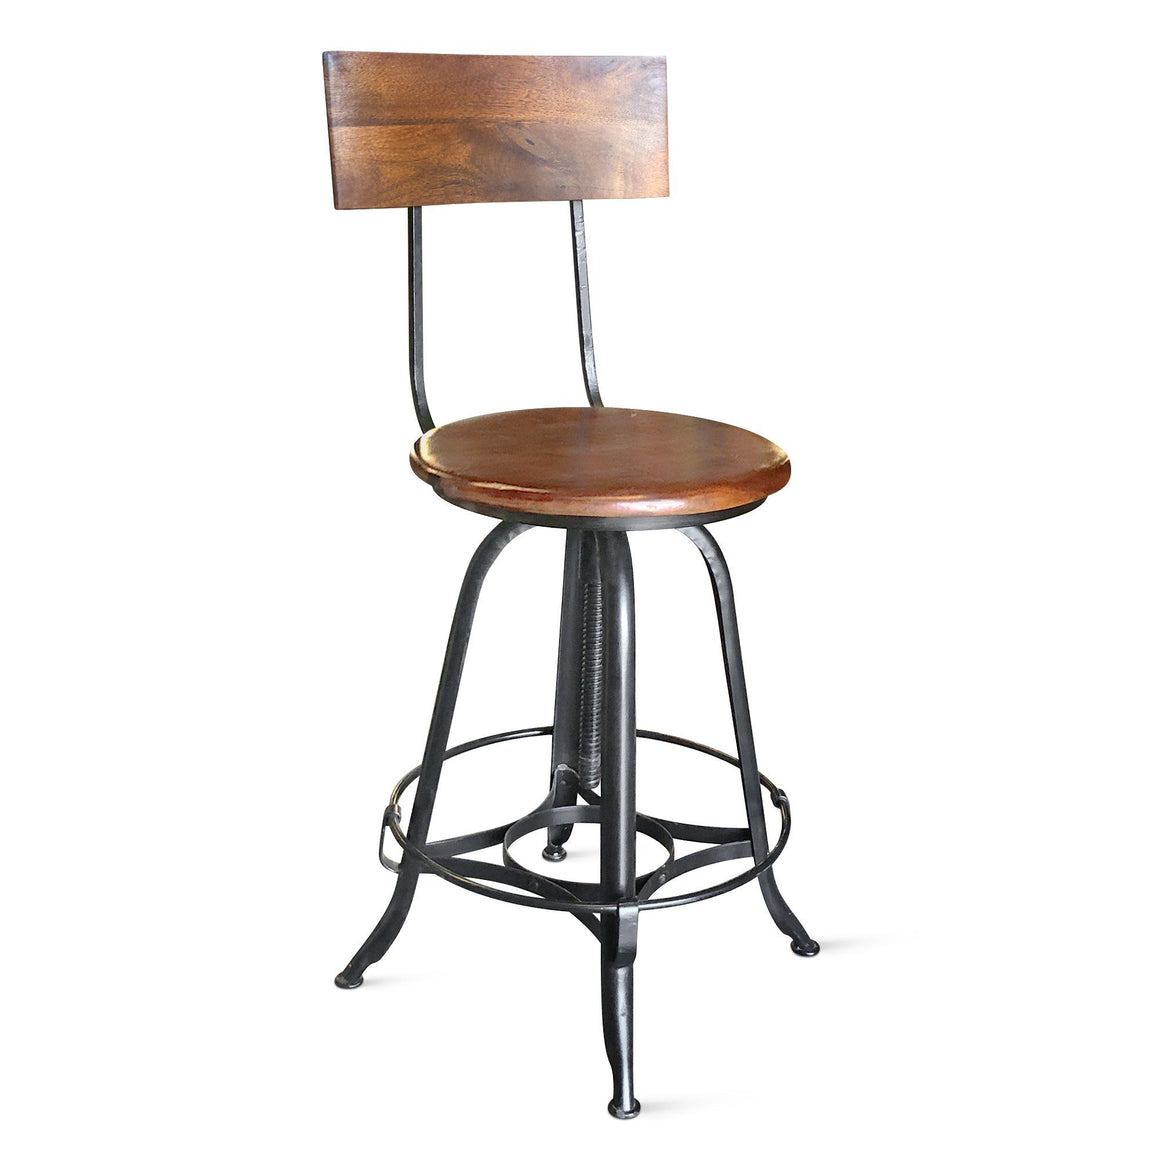 Bar Stool - Adjustable Height Chair - Footrest Swivel Seat Backrest Chair Rustic Deco